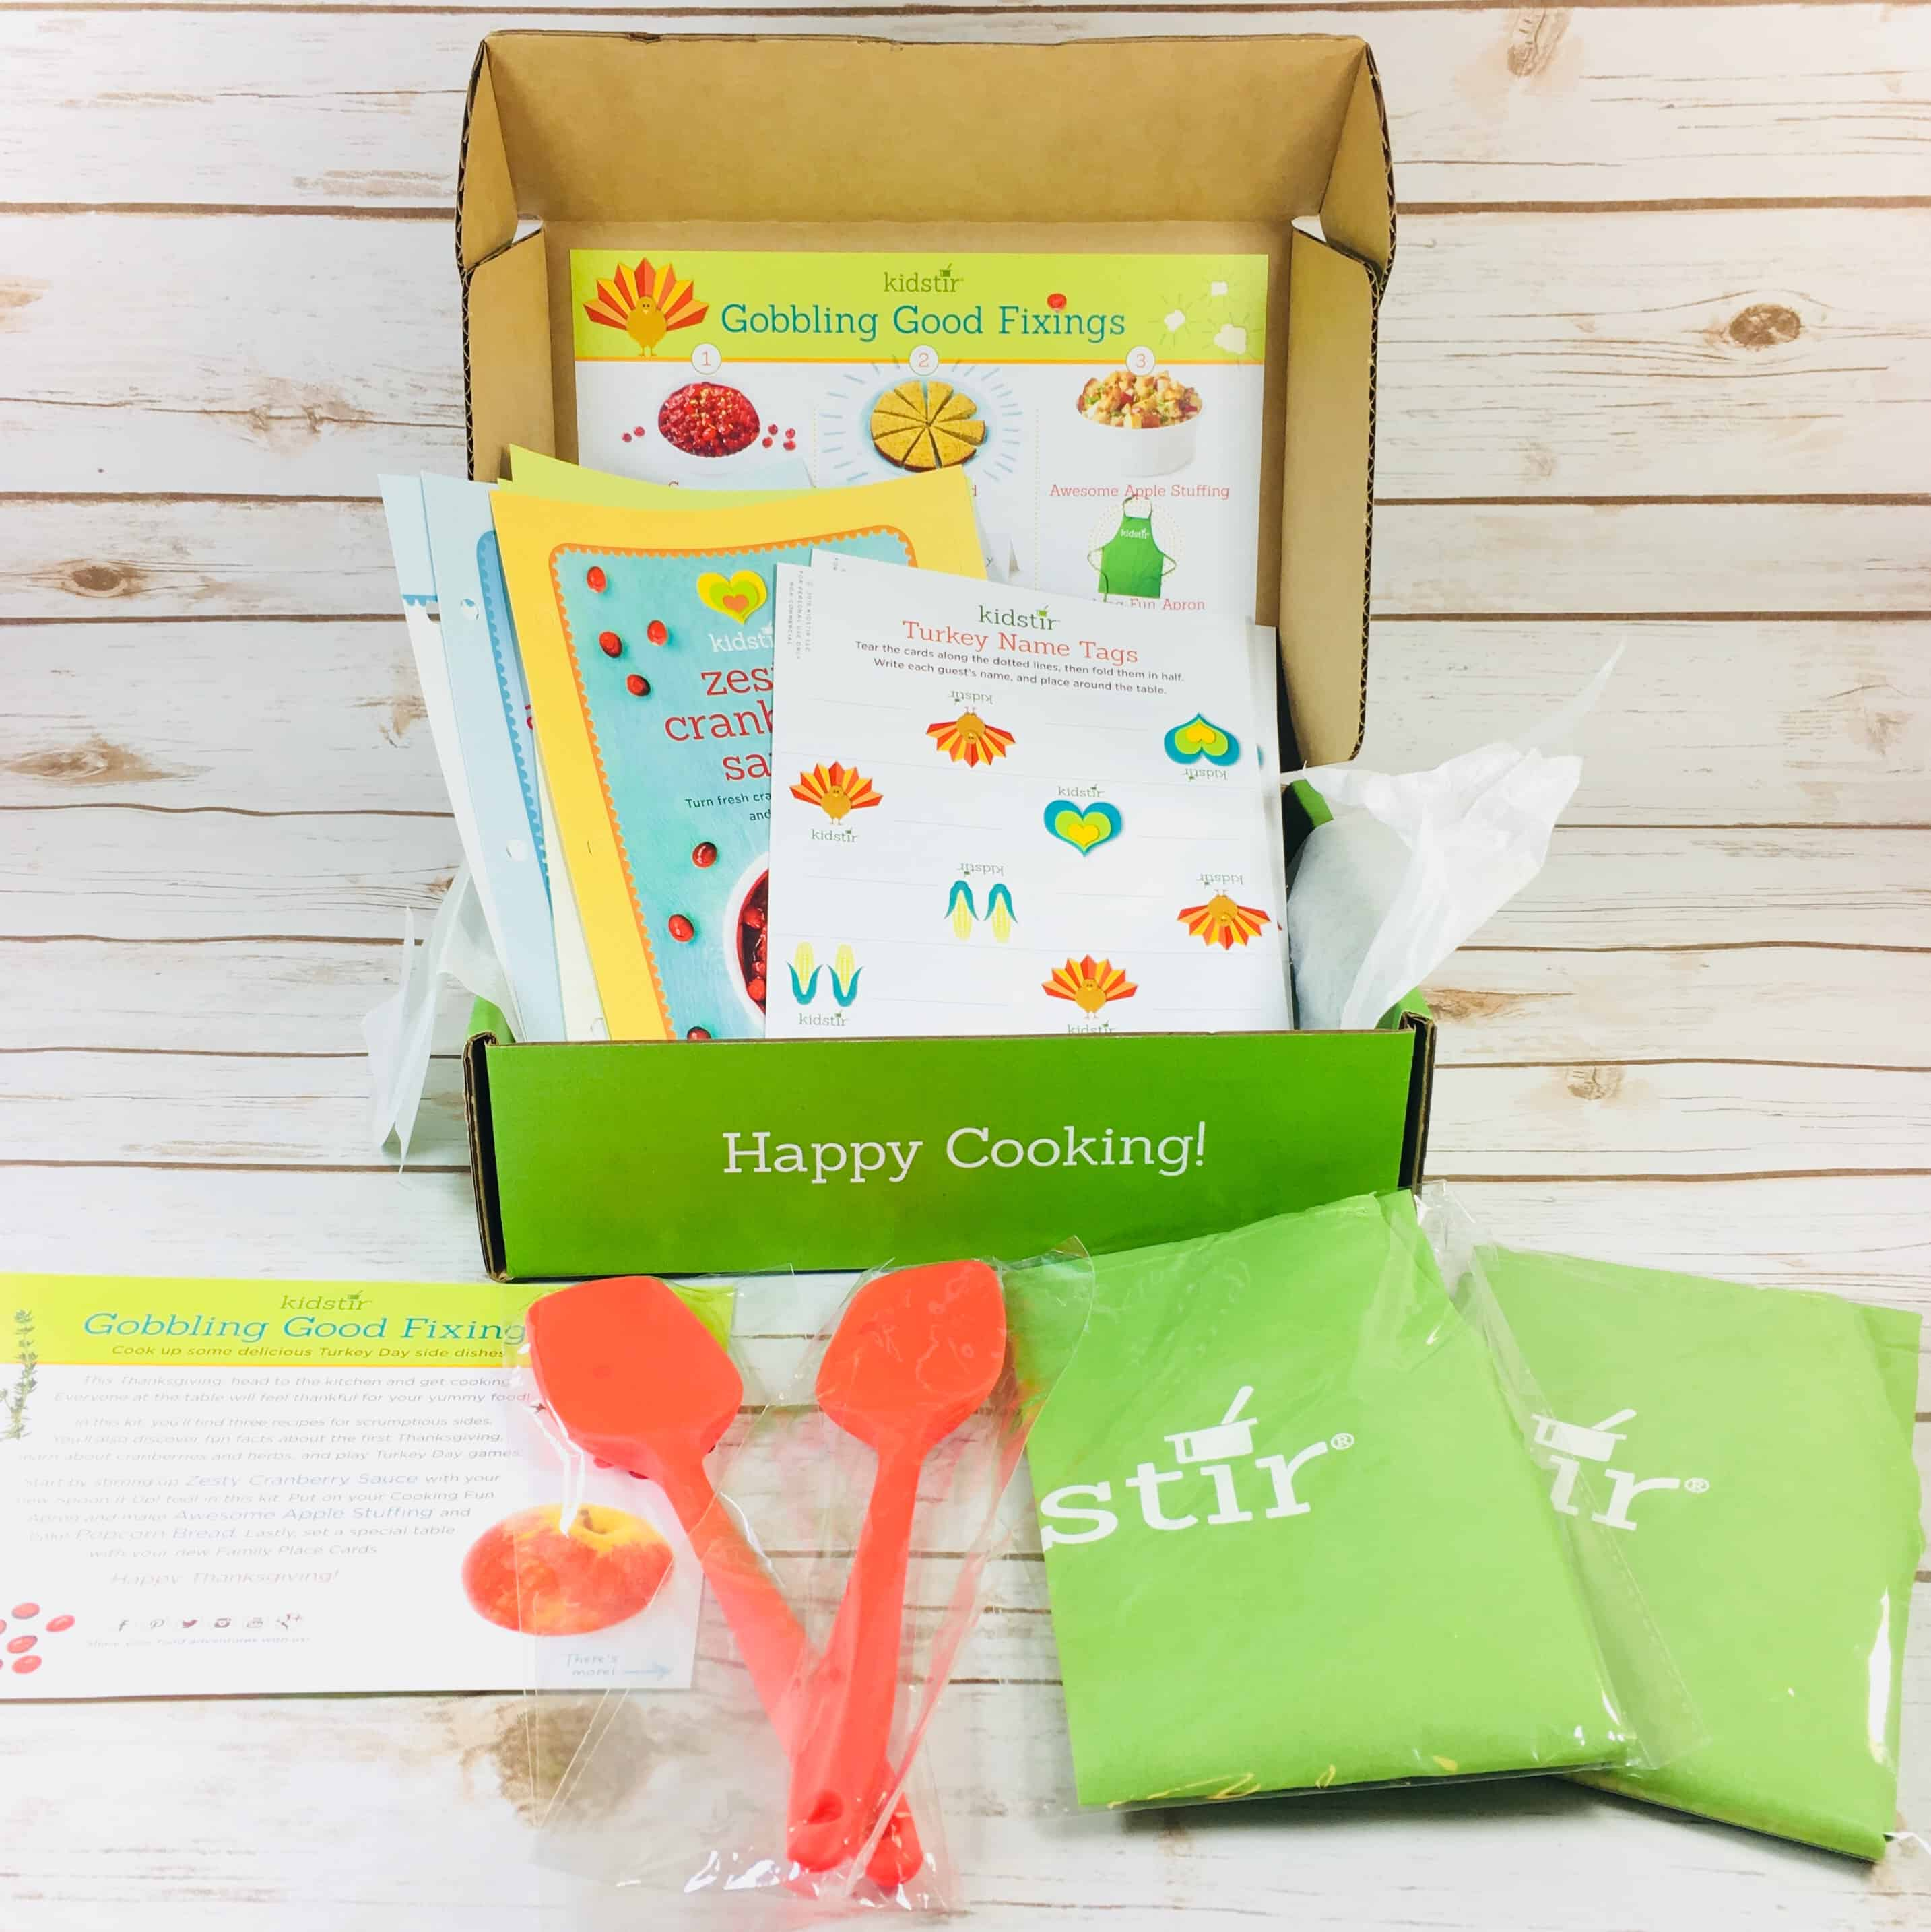 Kidstir November 2017 Subscription Box Review + Coupon!